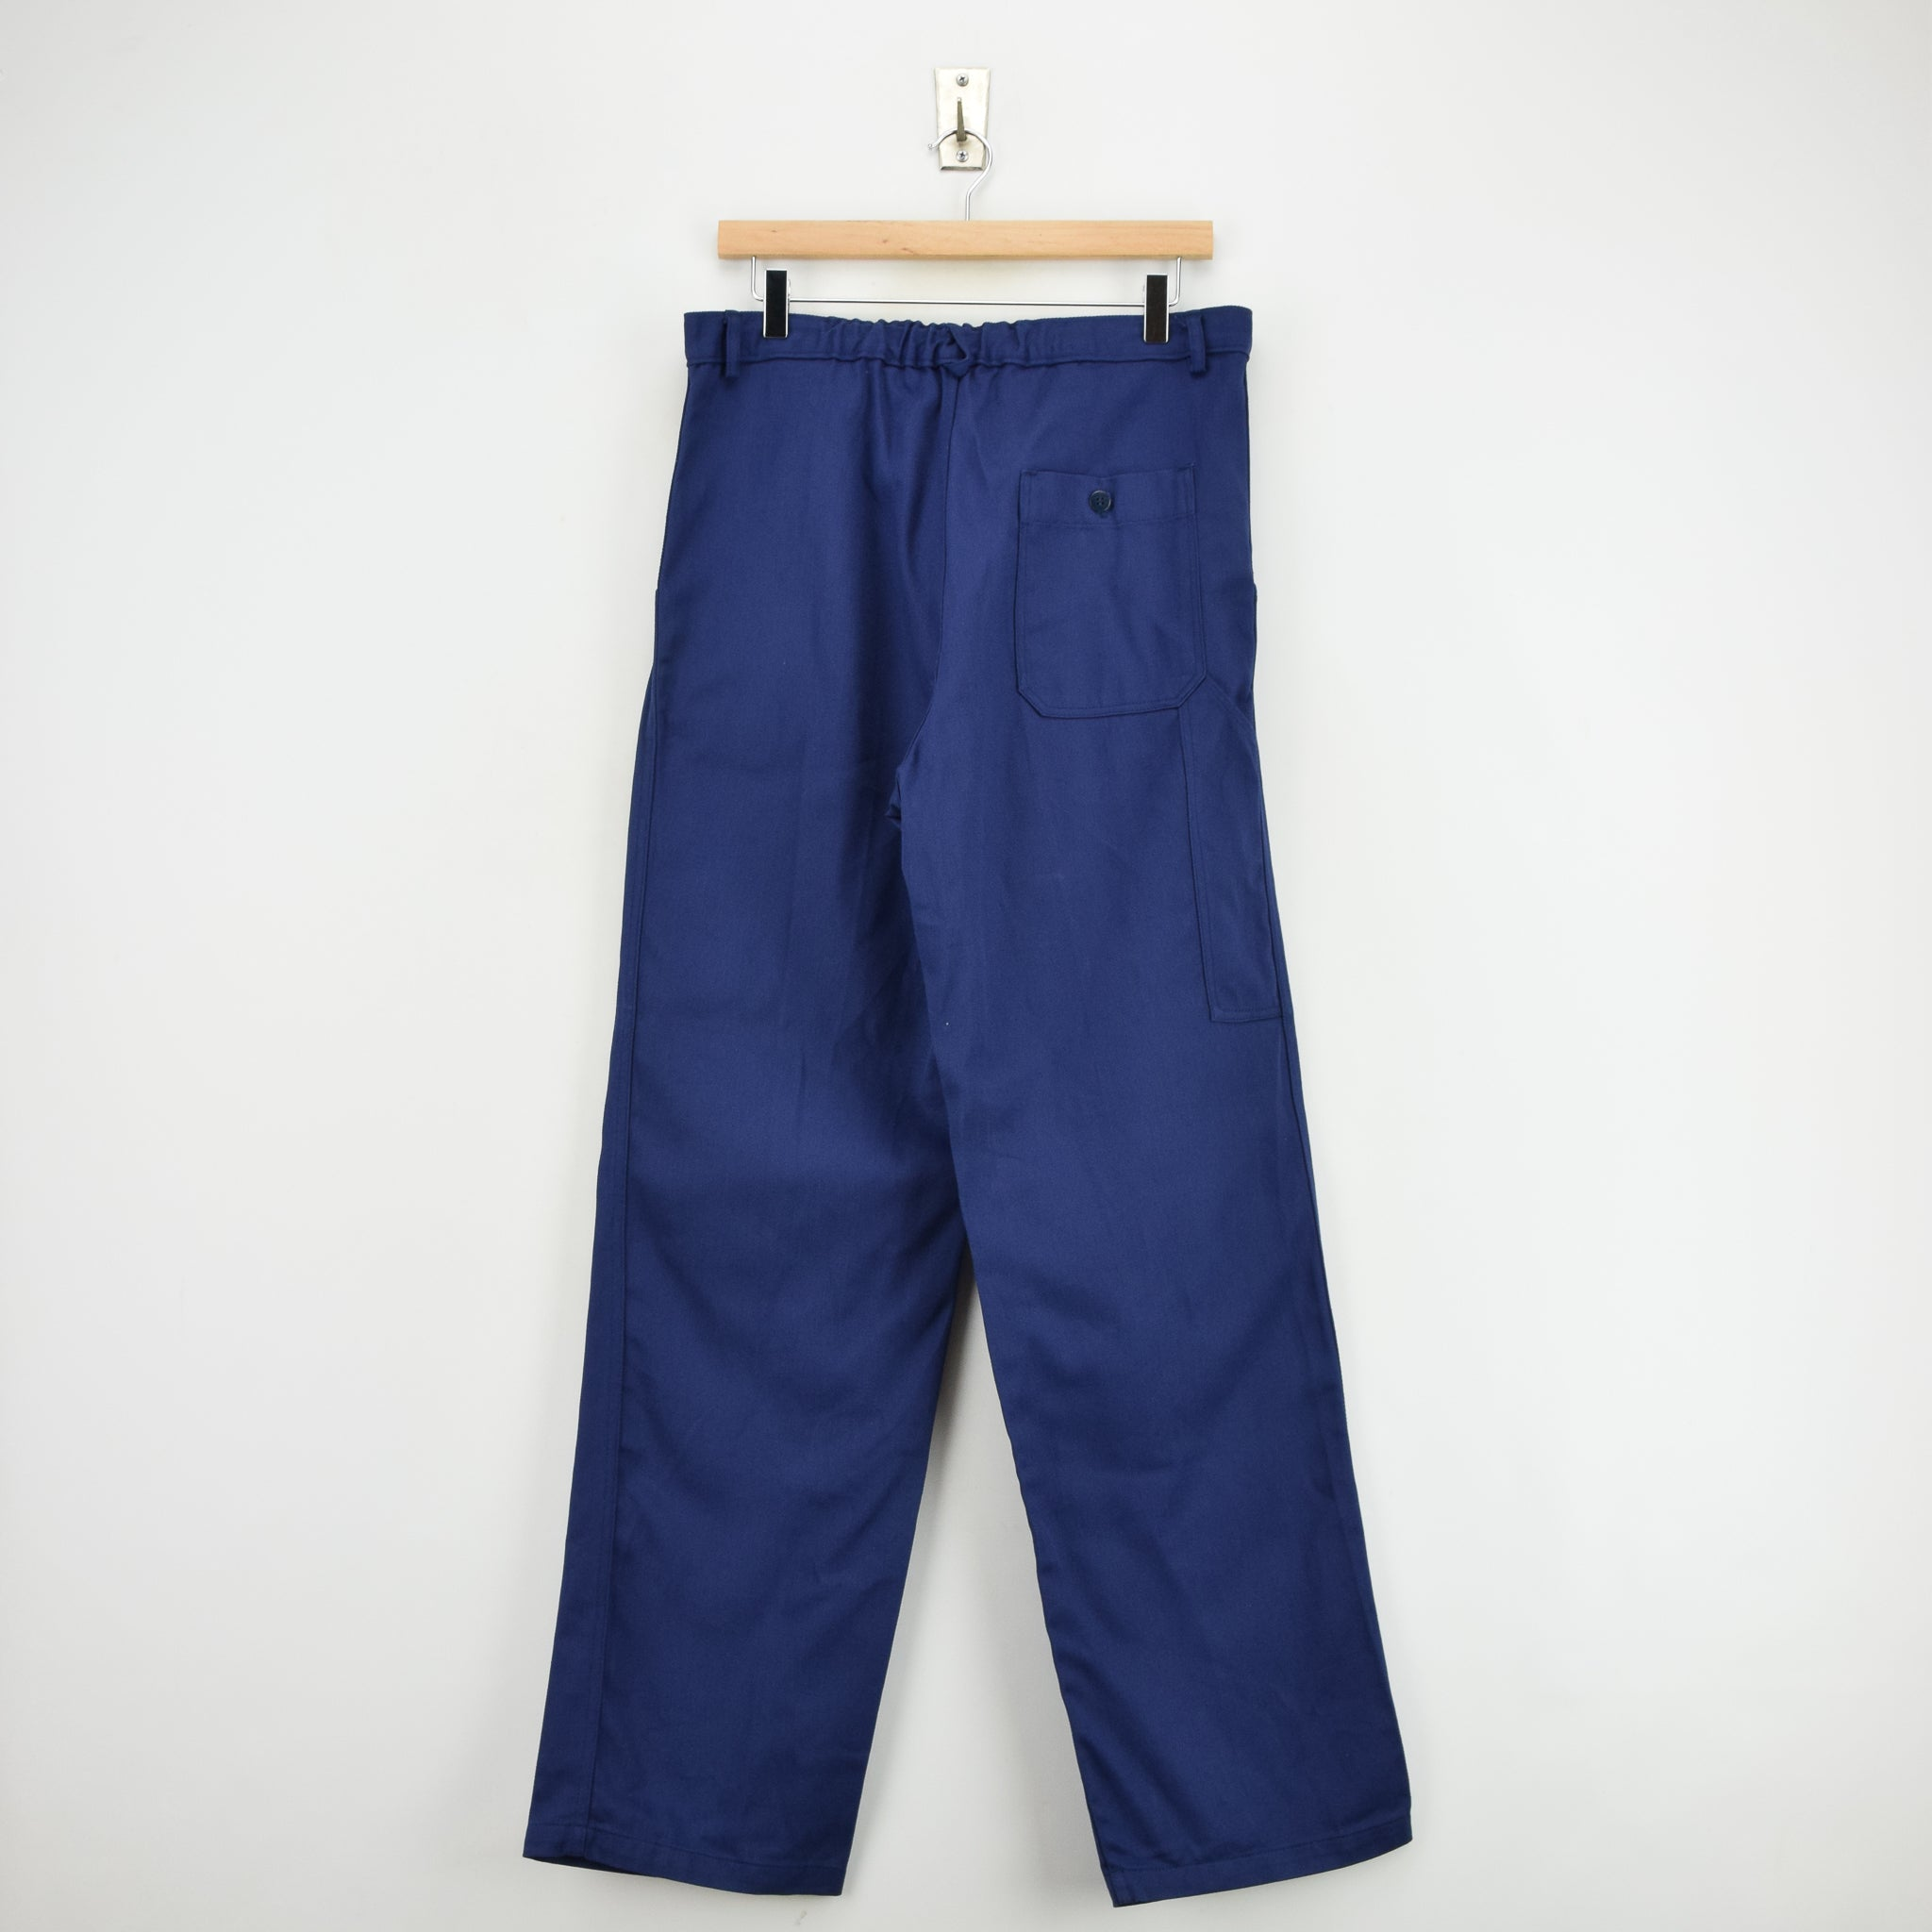 Vintage Workwear Deadstock Blue French Style Work Utility Trousers 32 W 32 L back